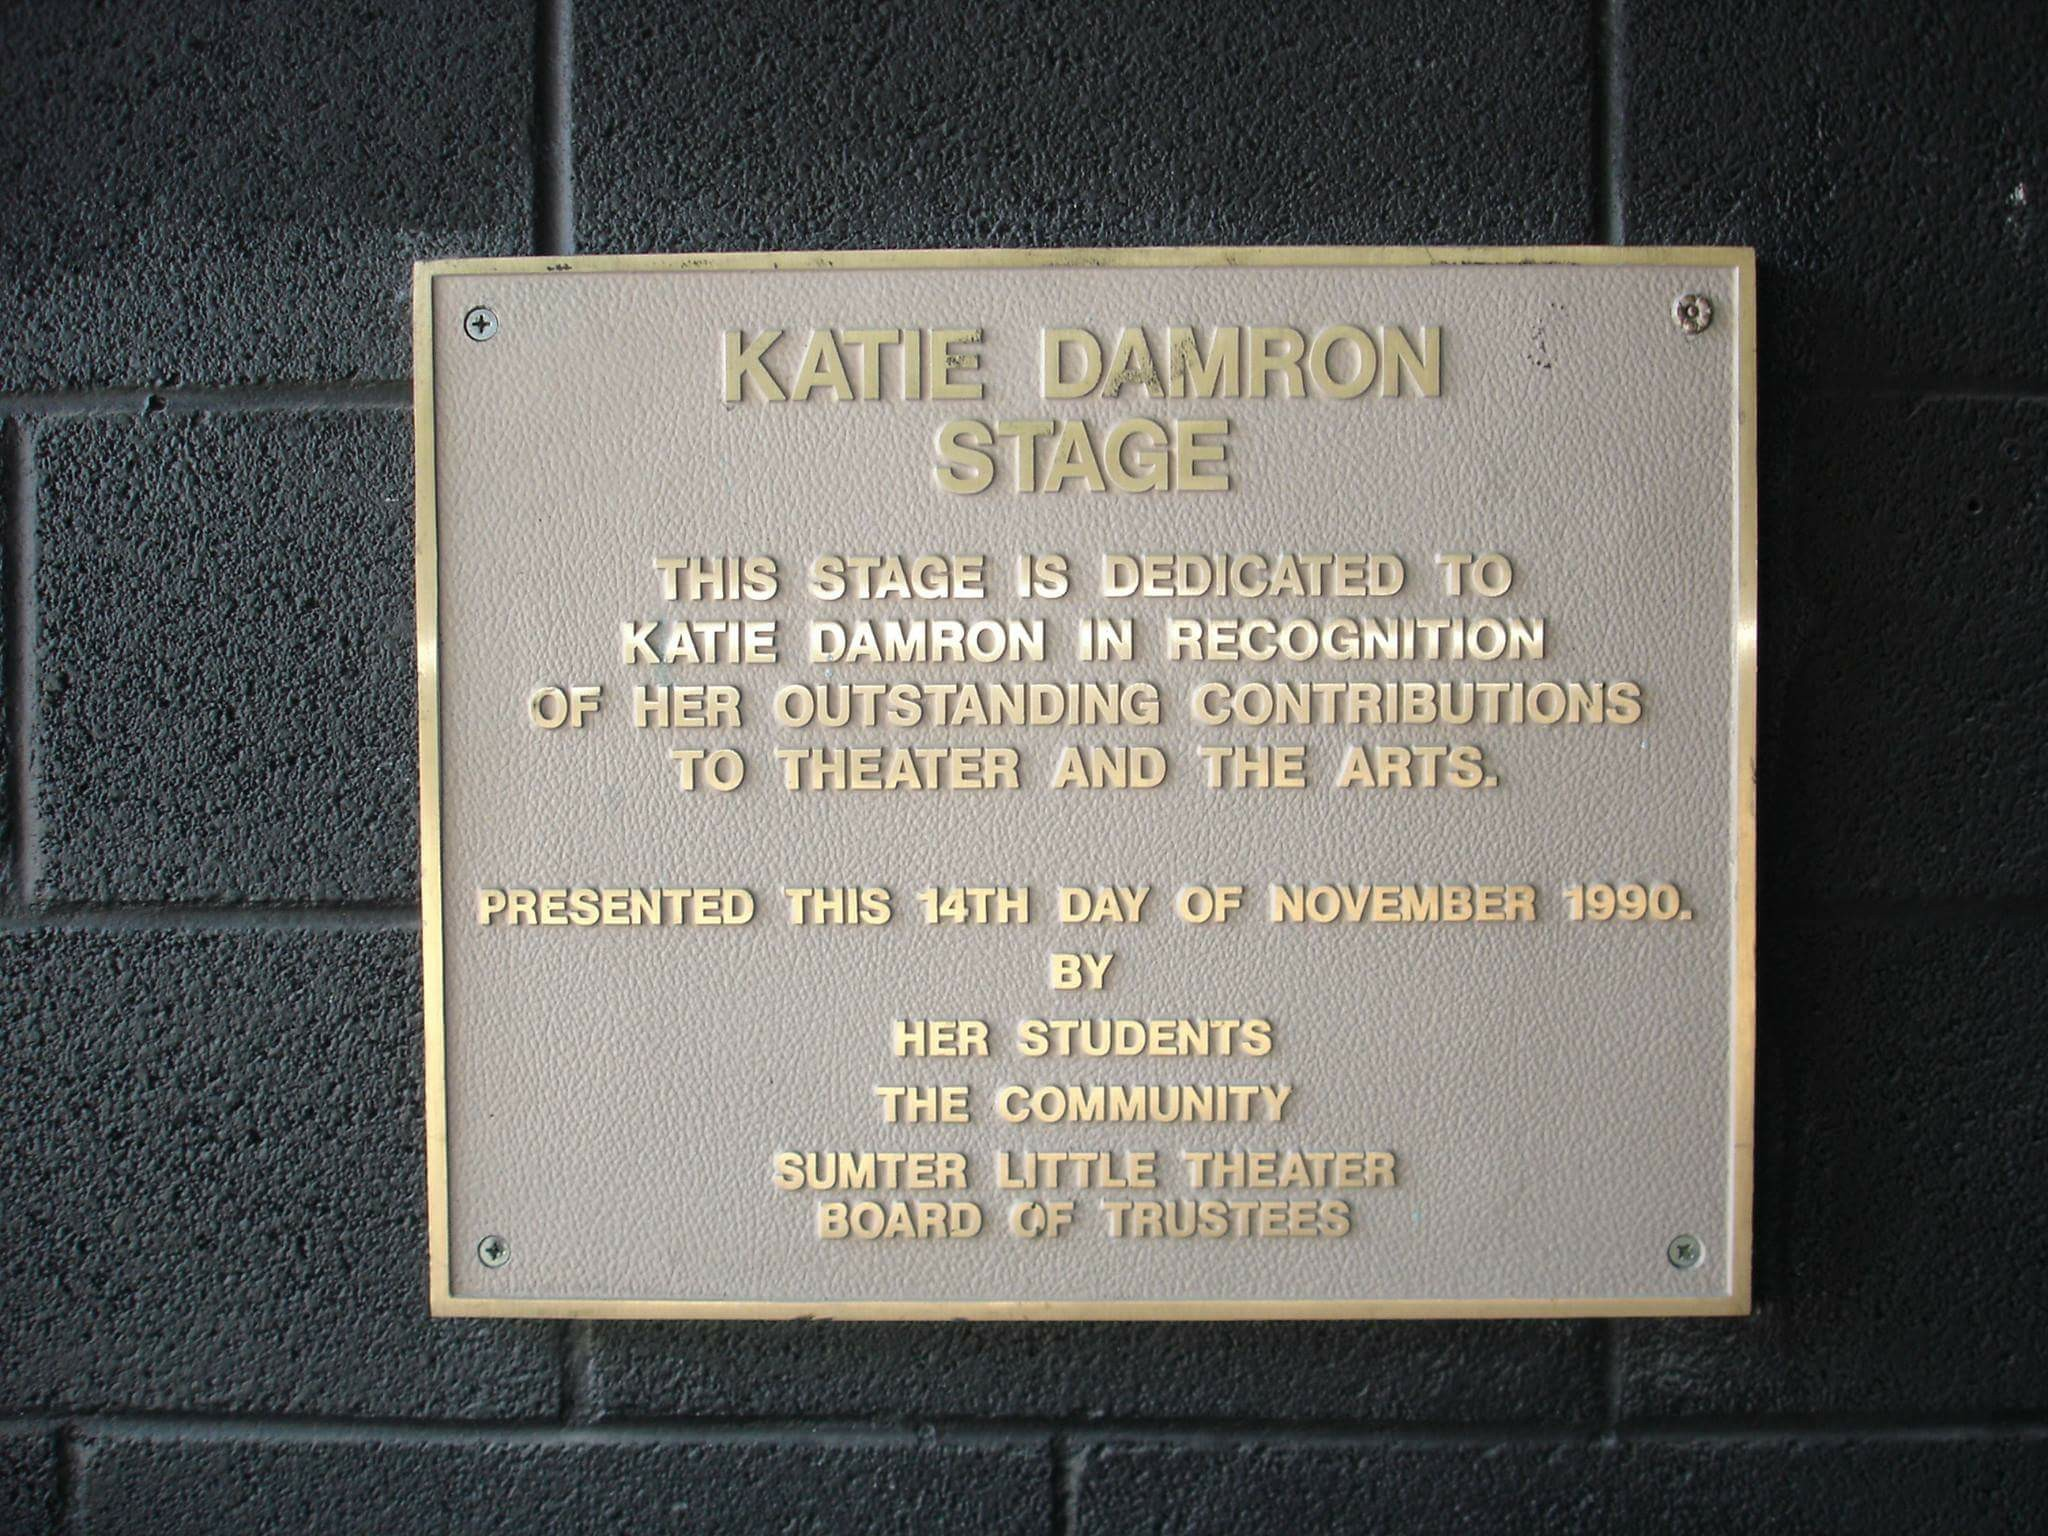 The Sumter Little Theatre named the theater The Katie Damron Stage, and she served as executive director until her retirement in 2009.